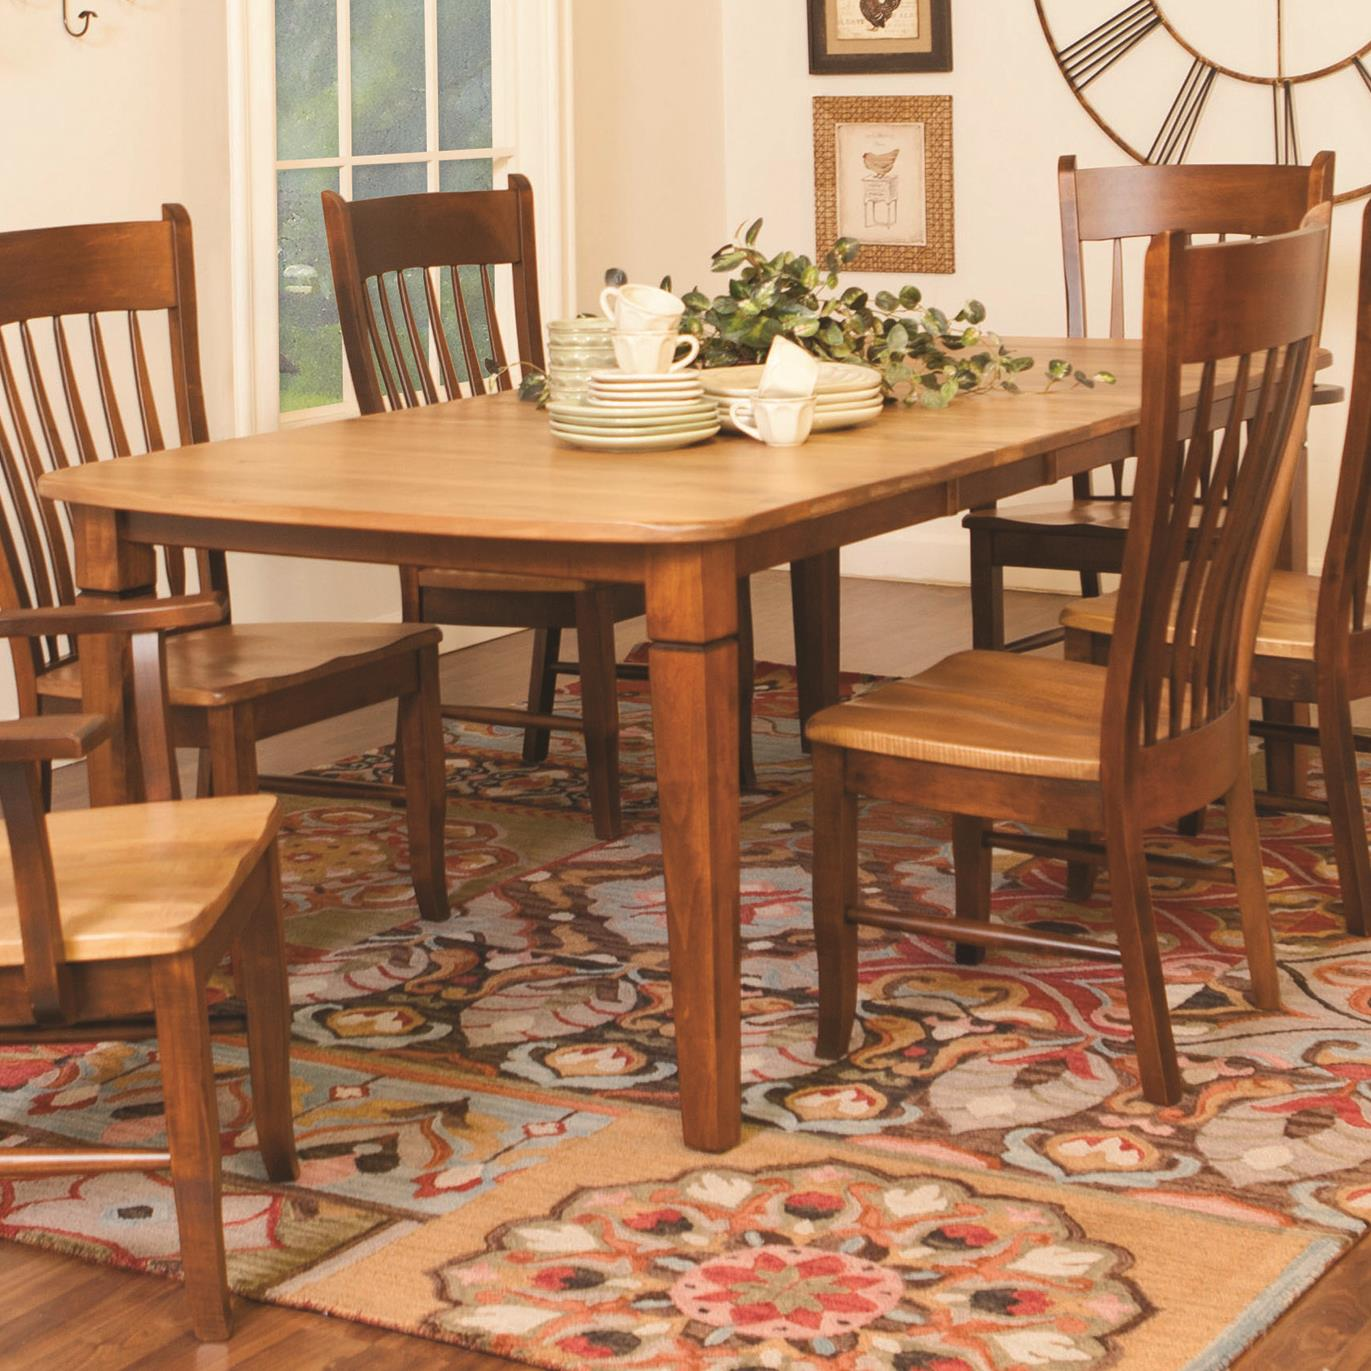 Millsdale Rectangular Dining Table by Daniel s Amish